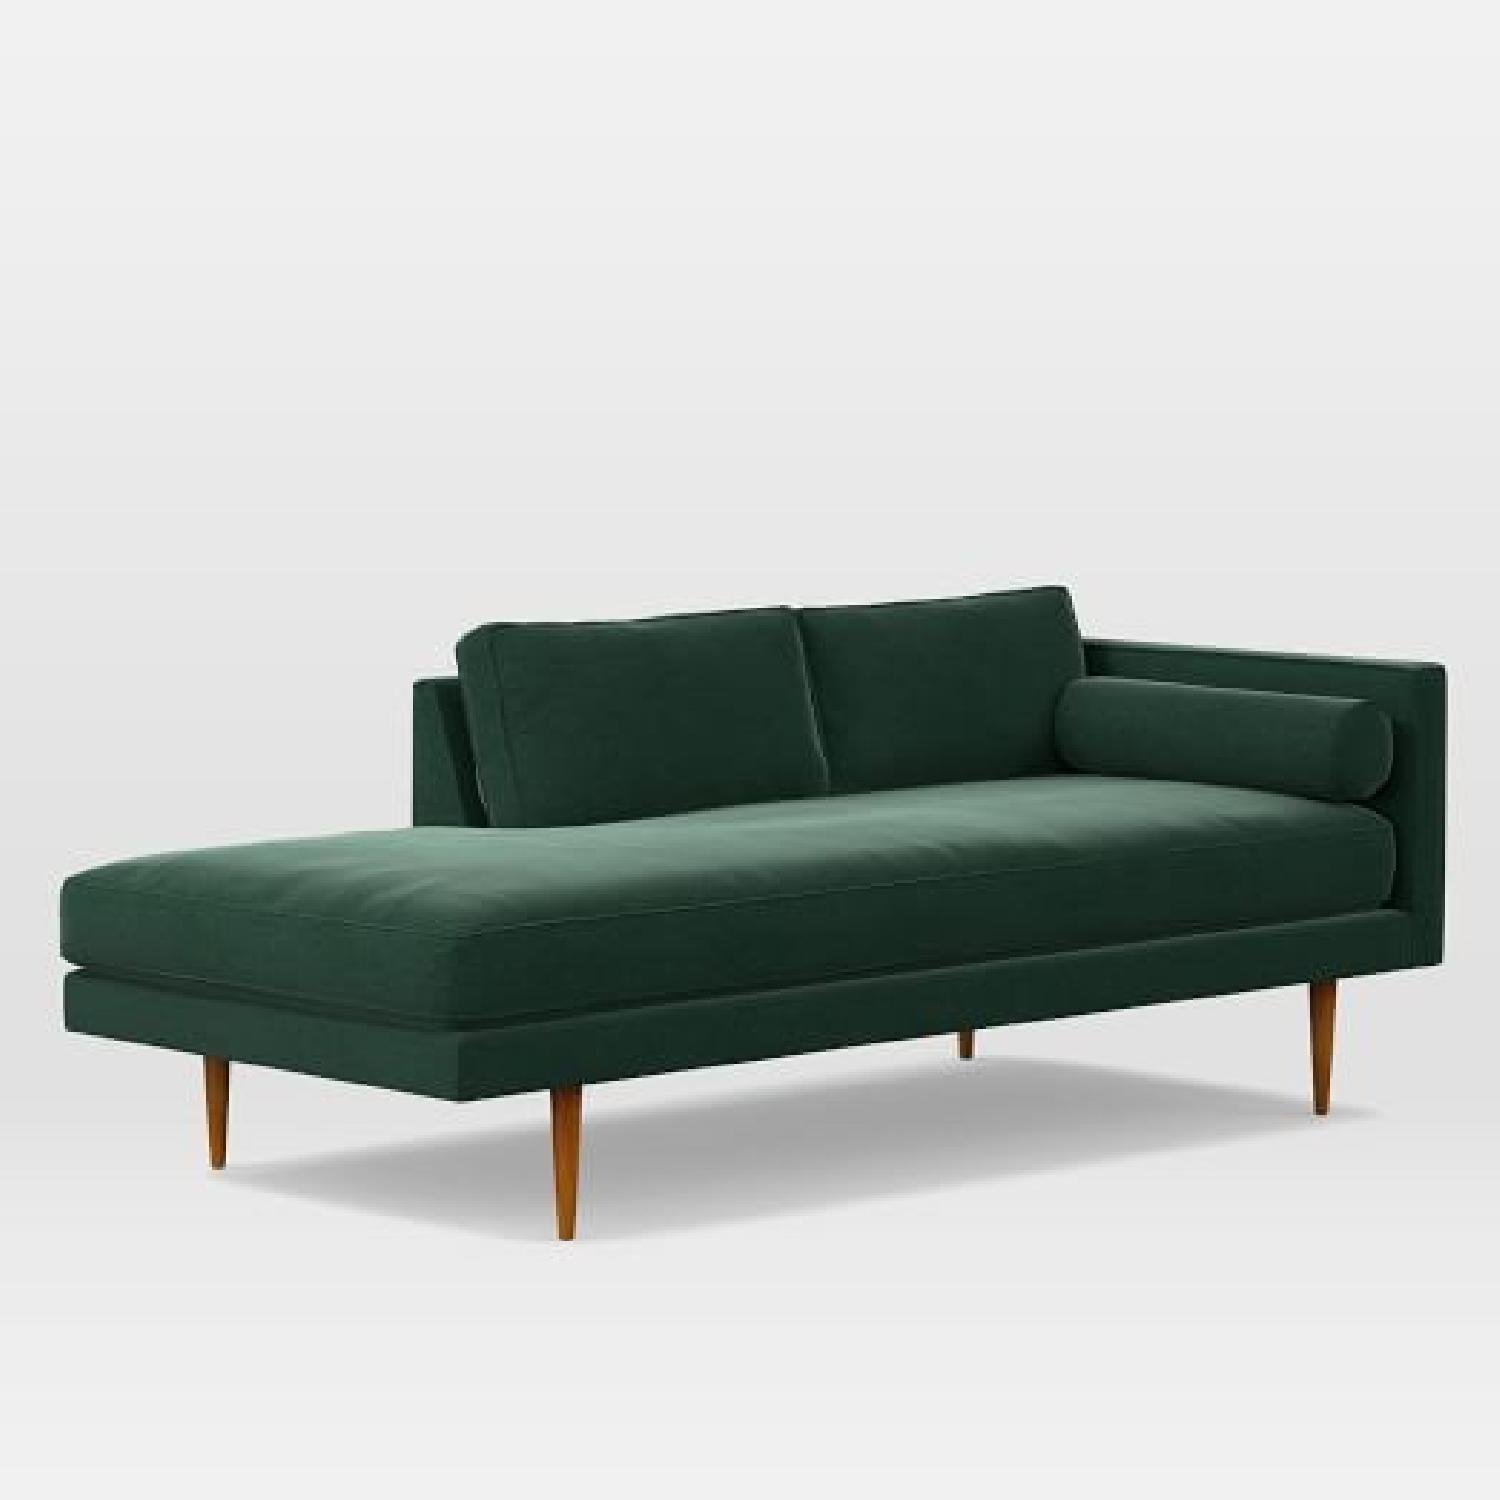 West Elm Monroe Mid-Century Chaise Lounger-1